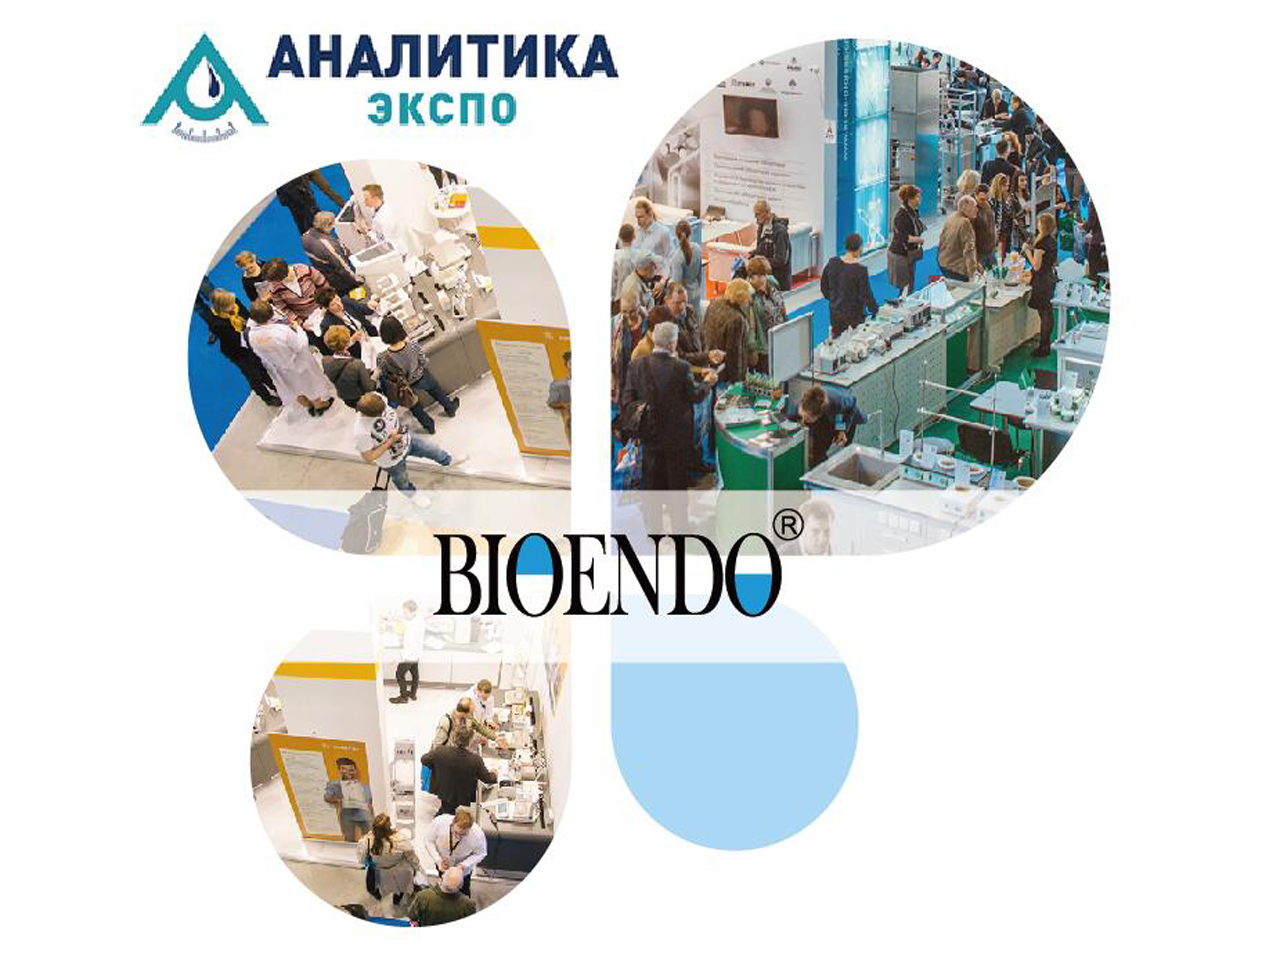 2019 Russia, Moscow, Laboratory Instrument & Chemical Reagents Show